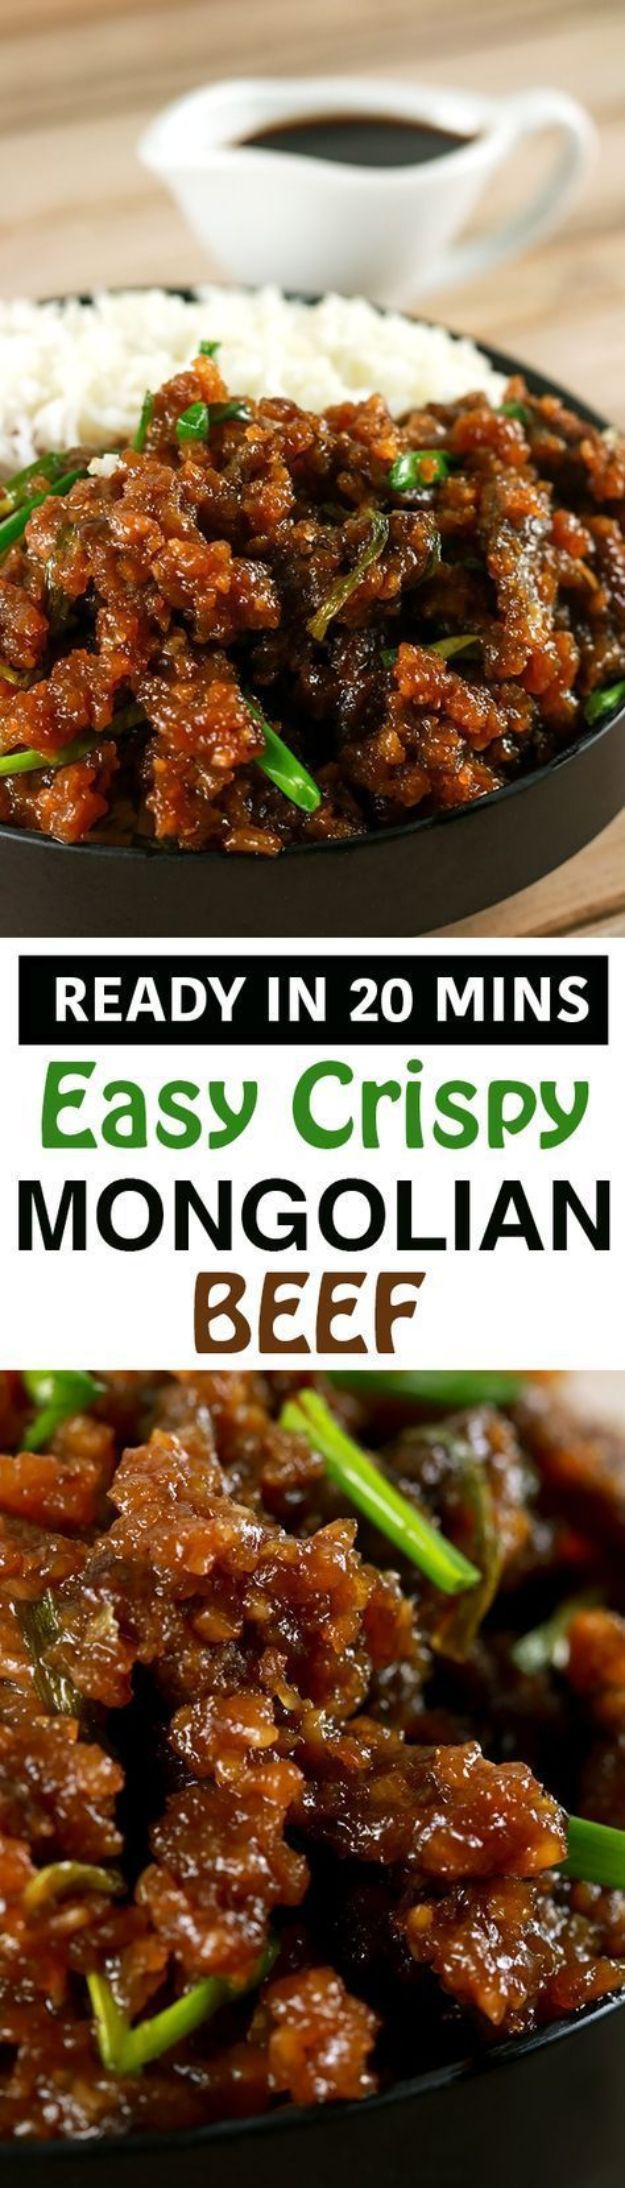 Easy Dinner Recipes - Easy Crispy Mongolian Beef - Quick and Simple Dinner Recipe Ideas for Weeknight and Last Minute Supper - Chicken, Ground Beef, Fish, Pasta, Healthy Salads, Low Fat and Vegetarian Dishes #easyrecipes #dinnerideas #recipes